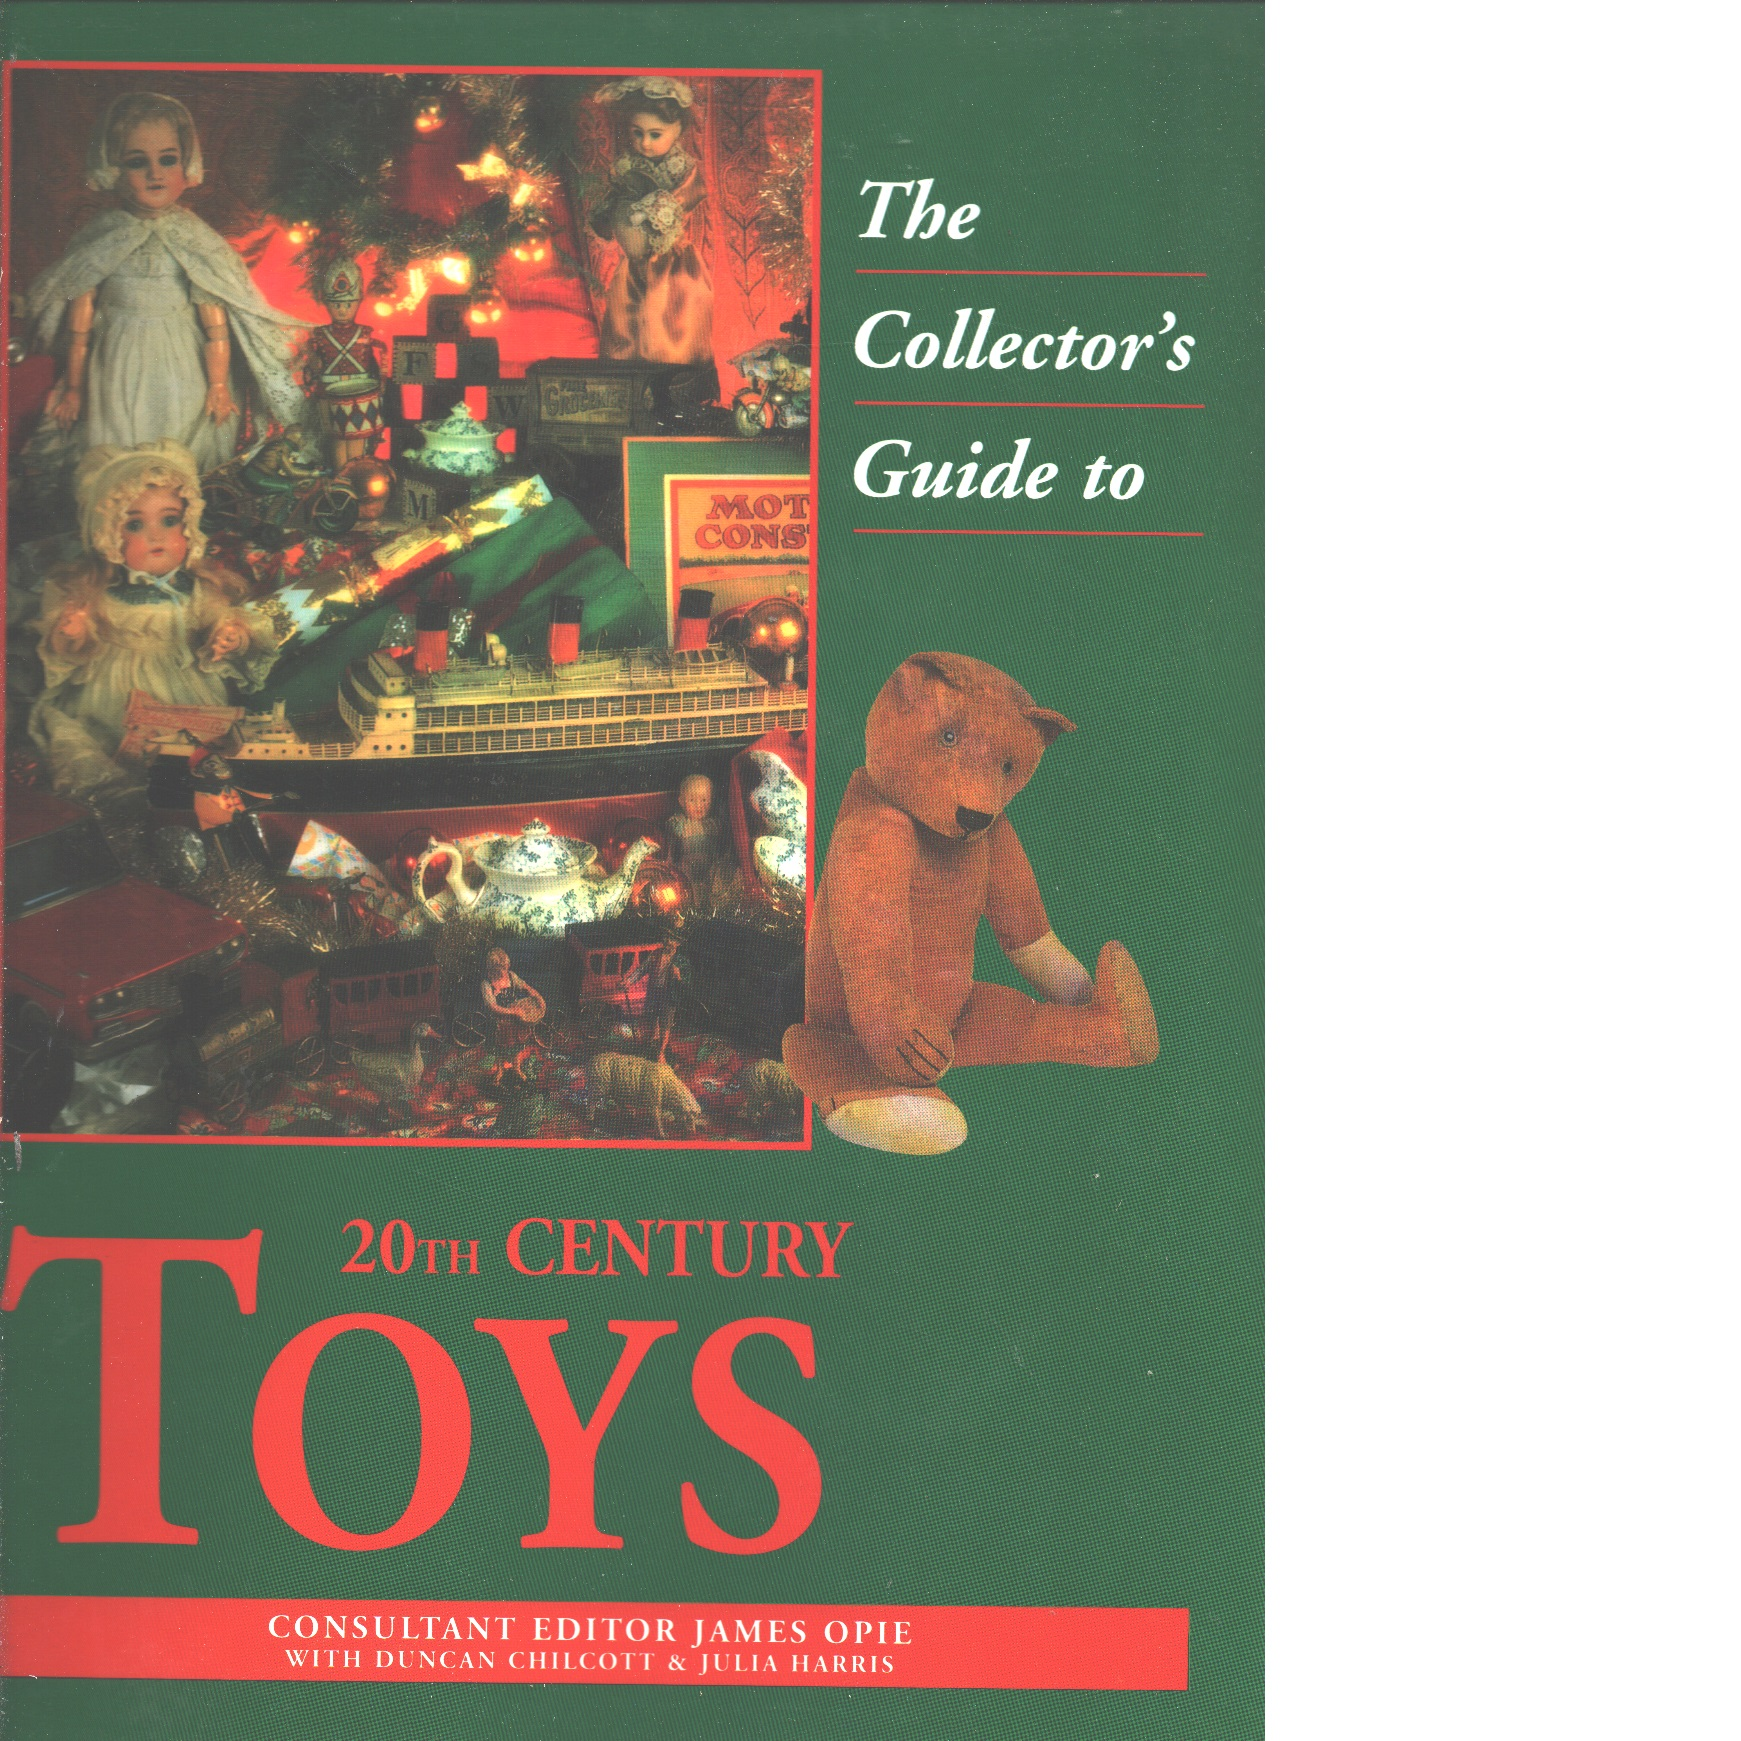 The Collector's Guide to 20th Century Toys - Opie, James